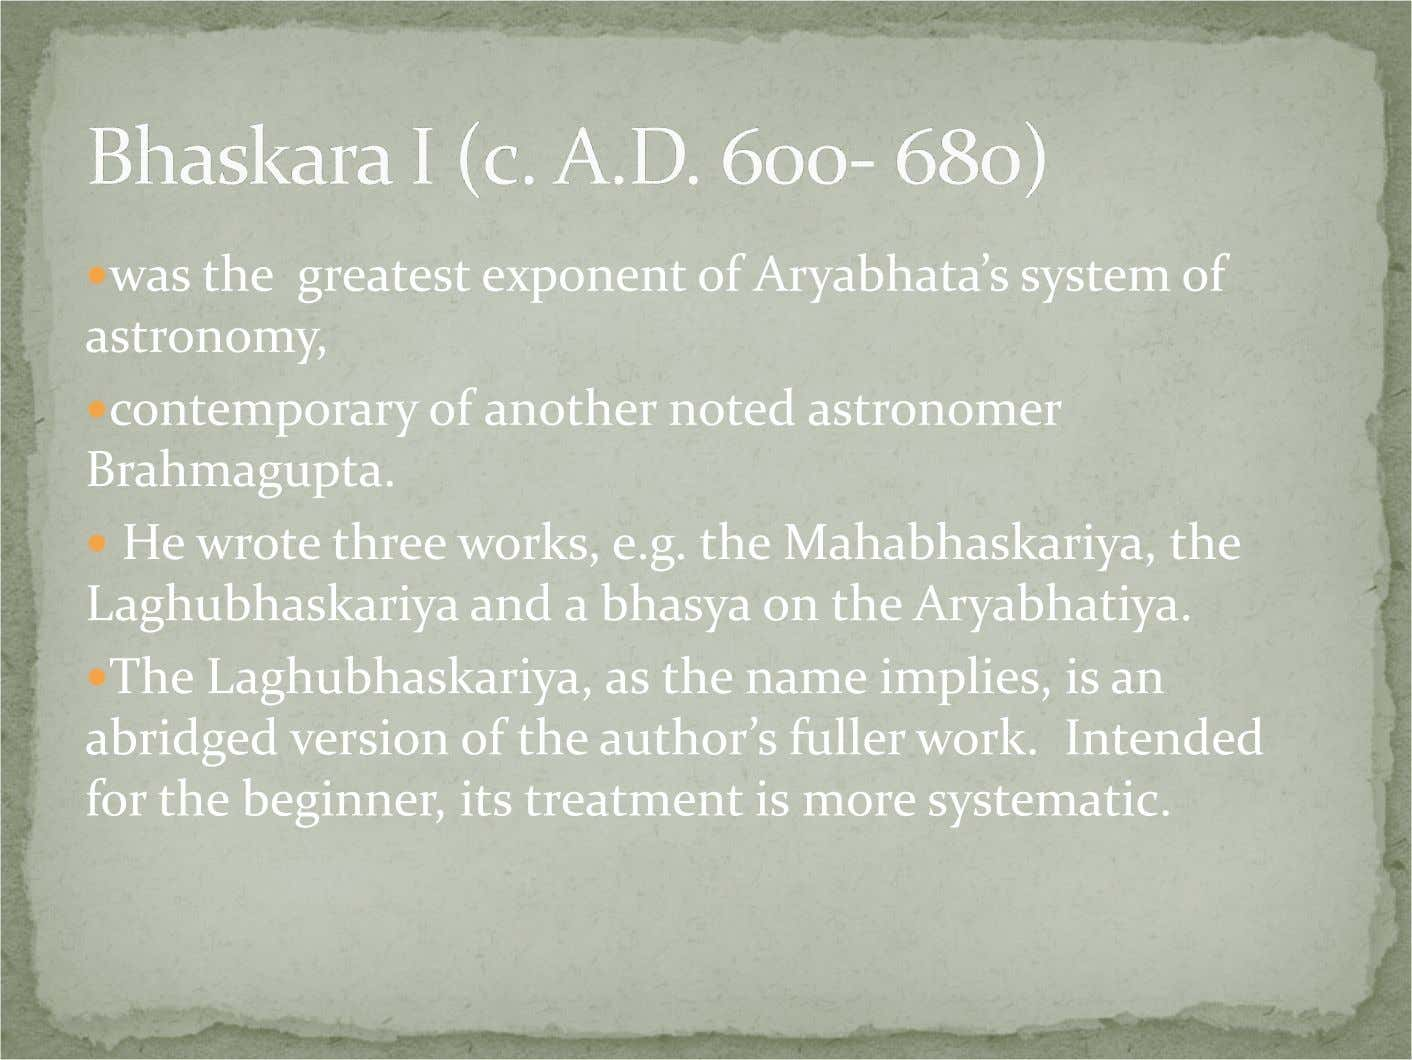 was the greatest exponent of Aryabhata's system of astronomy, contemporary of another noted astronomer Brahmagupta.